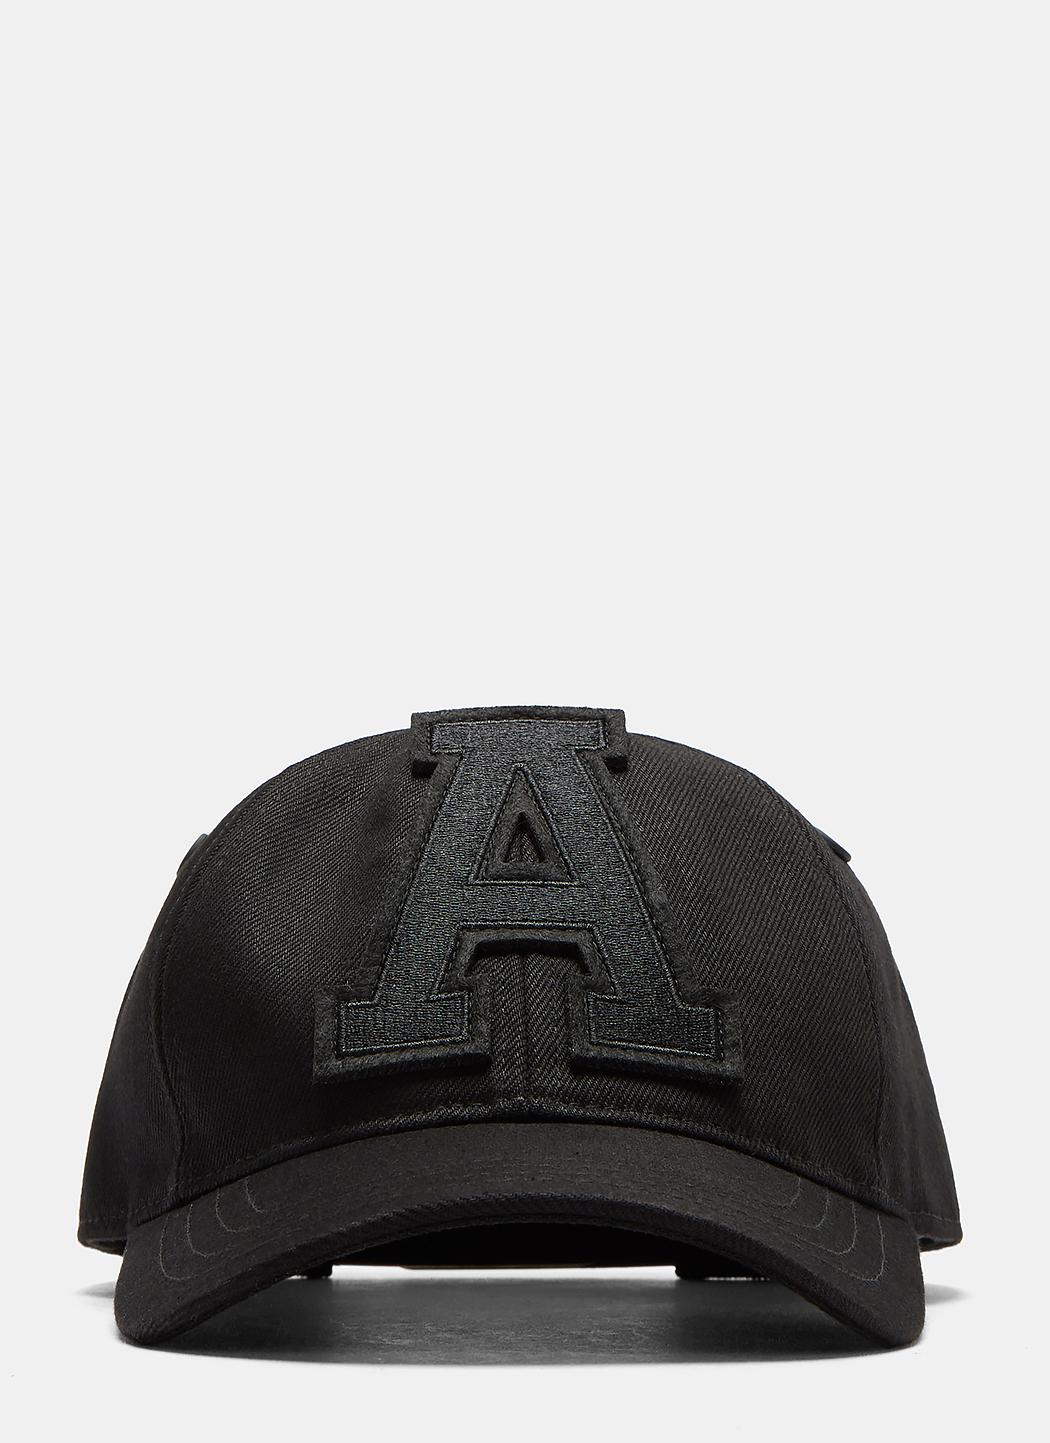 Six Panel Casquette Cap with A Patch Ami tAVyzTKq